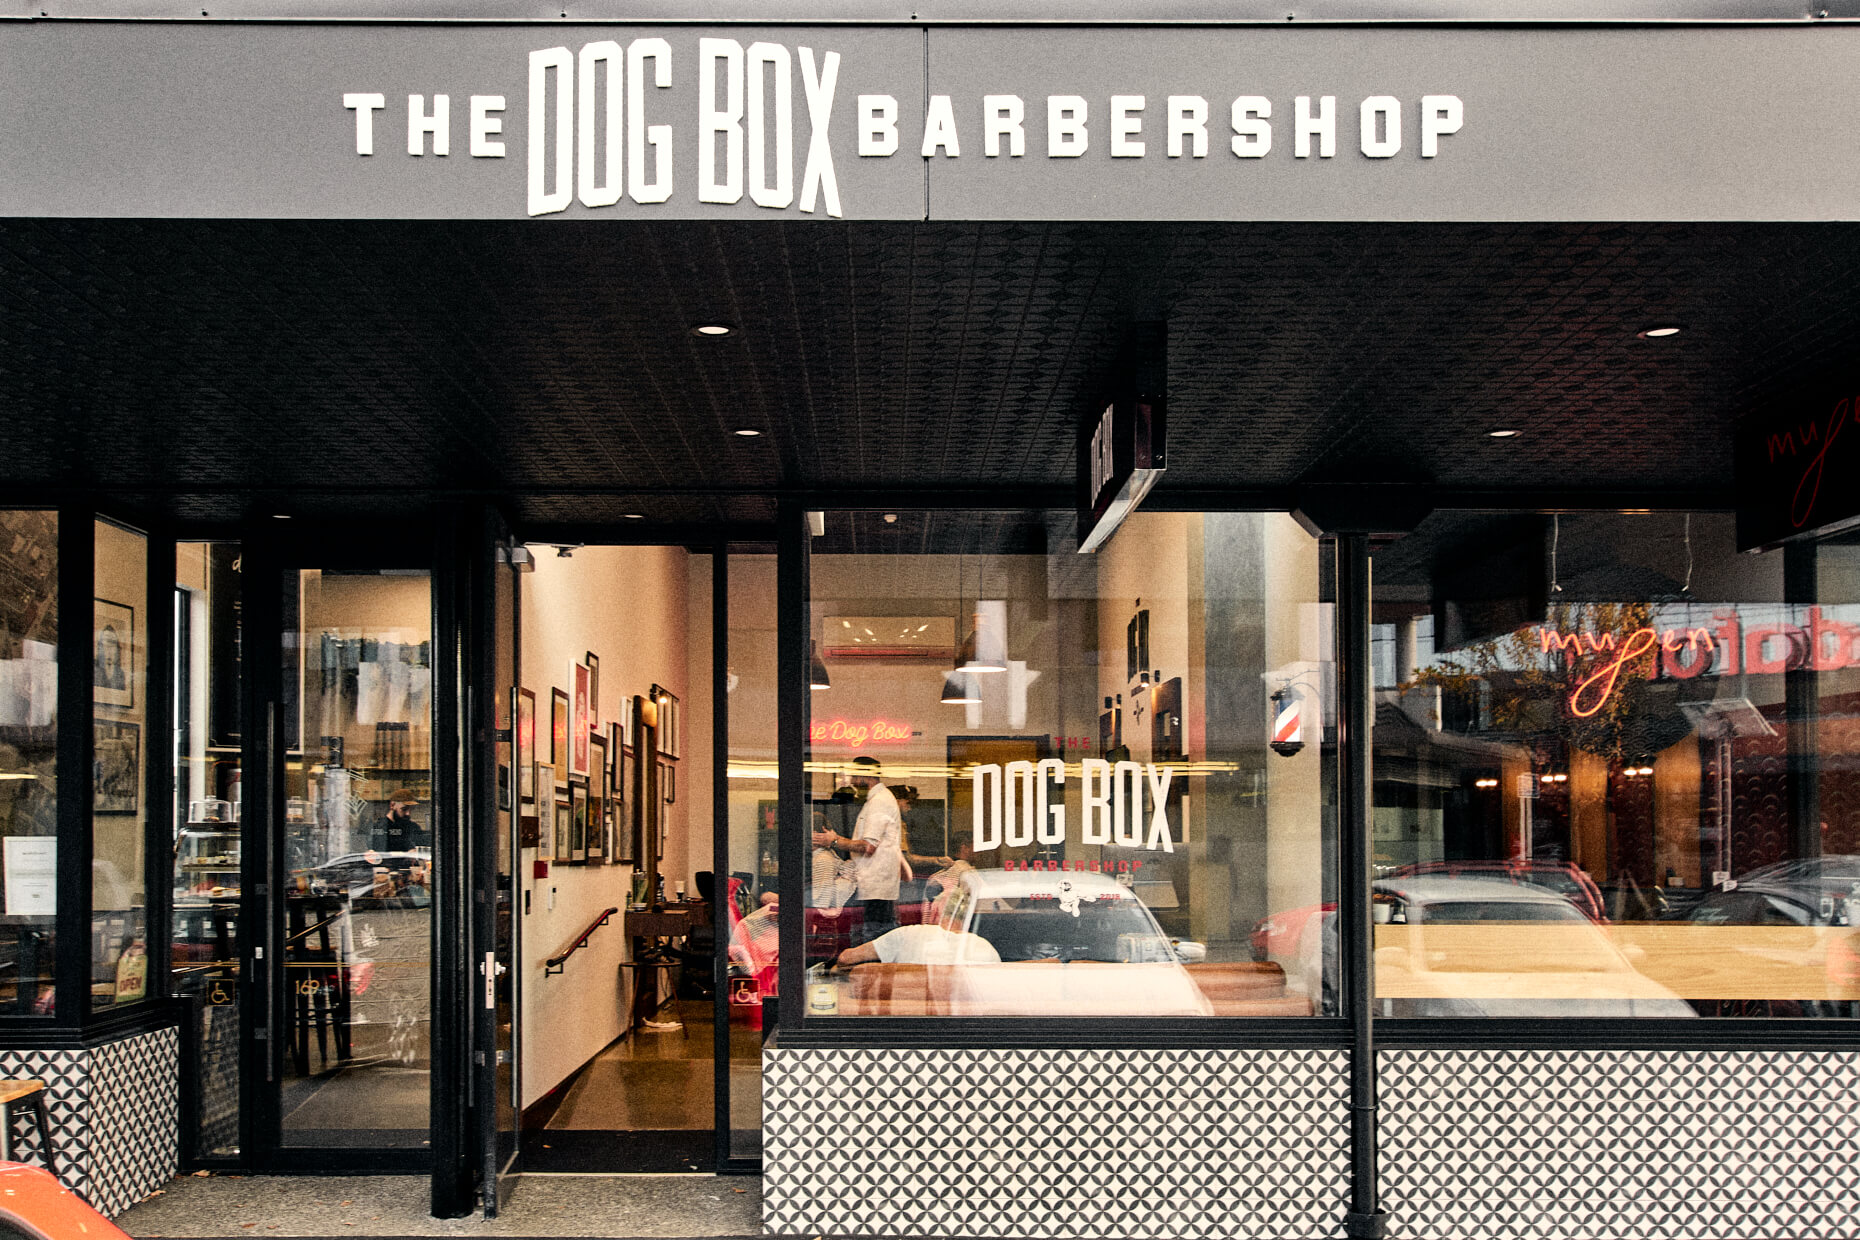 The_Dog_Box_Barbershop_01